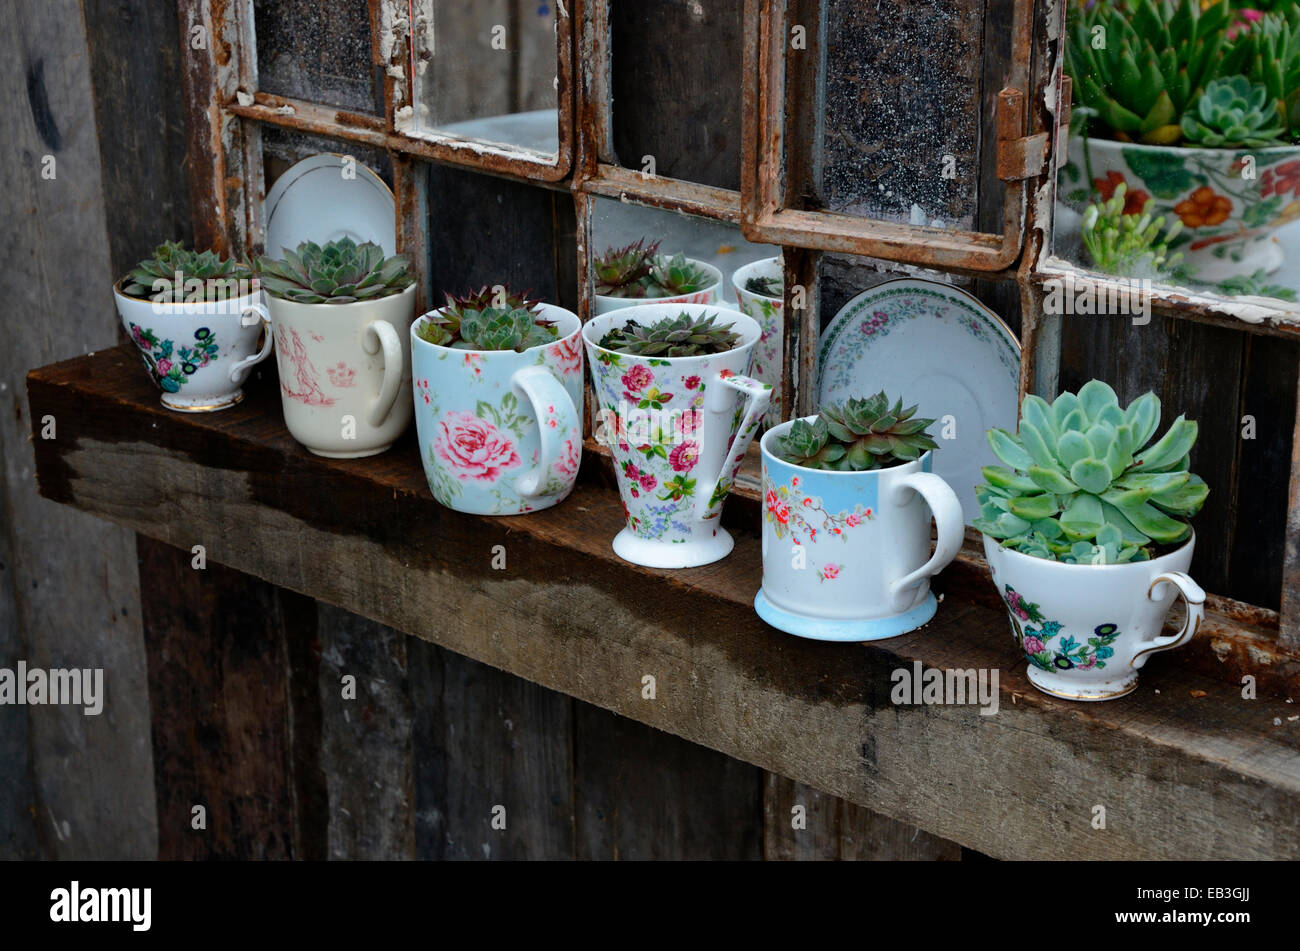 Decorative garden feature using mugs with cactus and old window frame - Stock Image